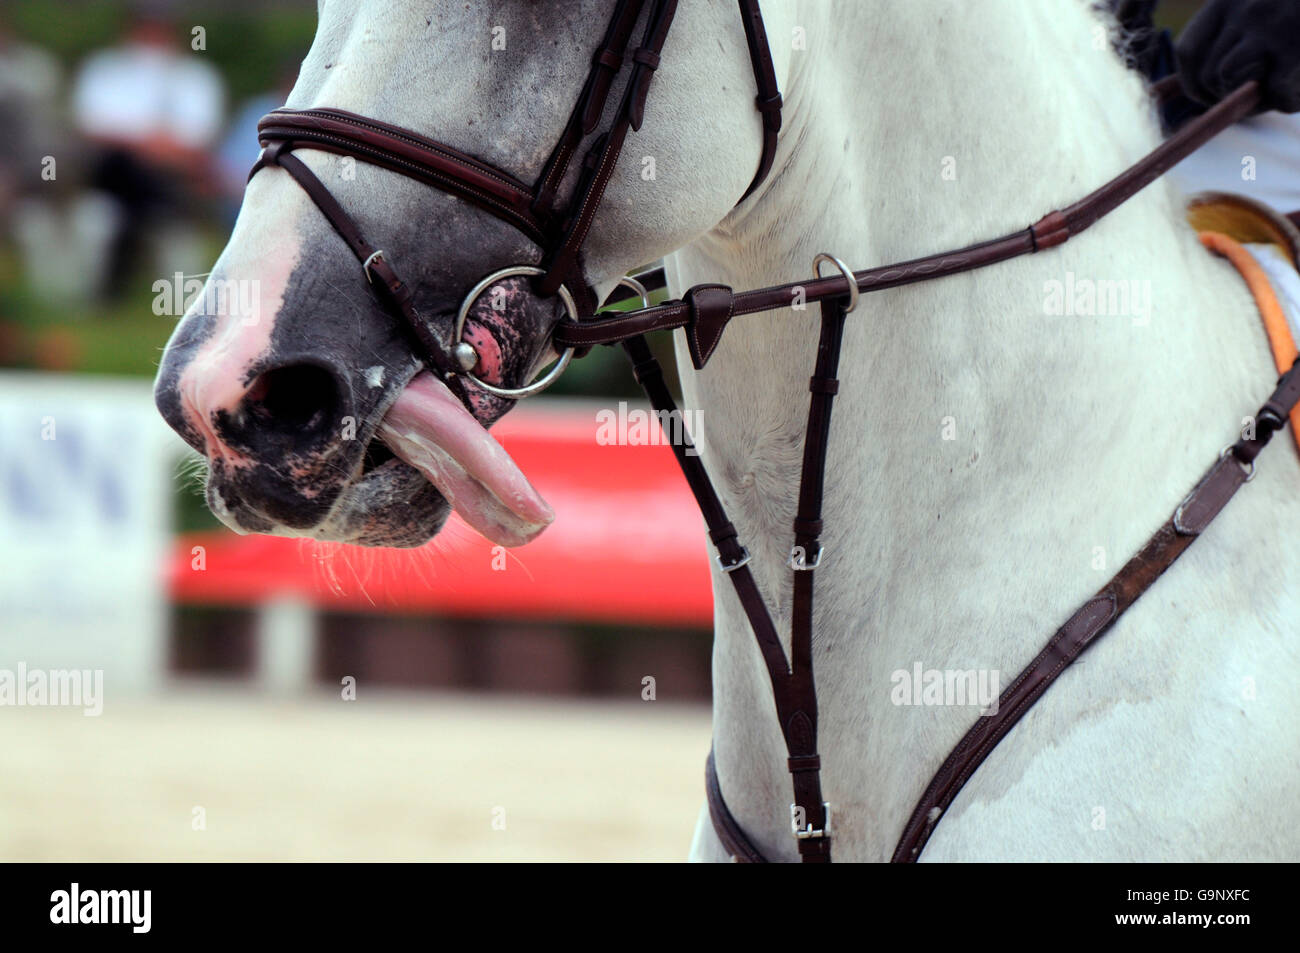 German Warmblood Horse Show Jumping Horse Tack Figure 8 Noseband Stock Photo Alamy